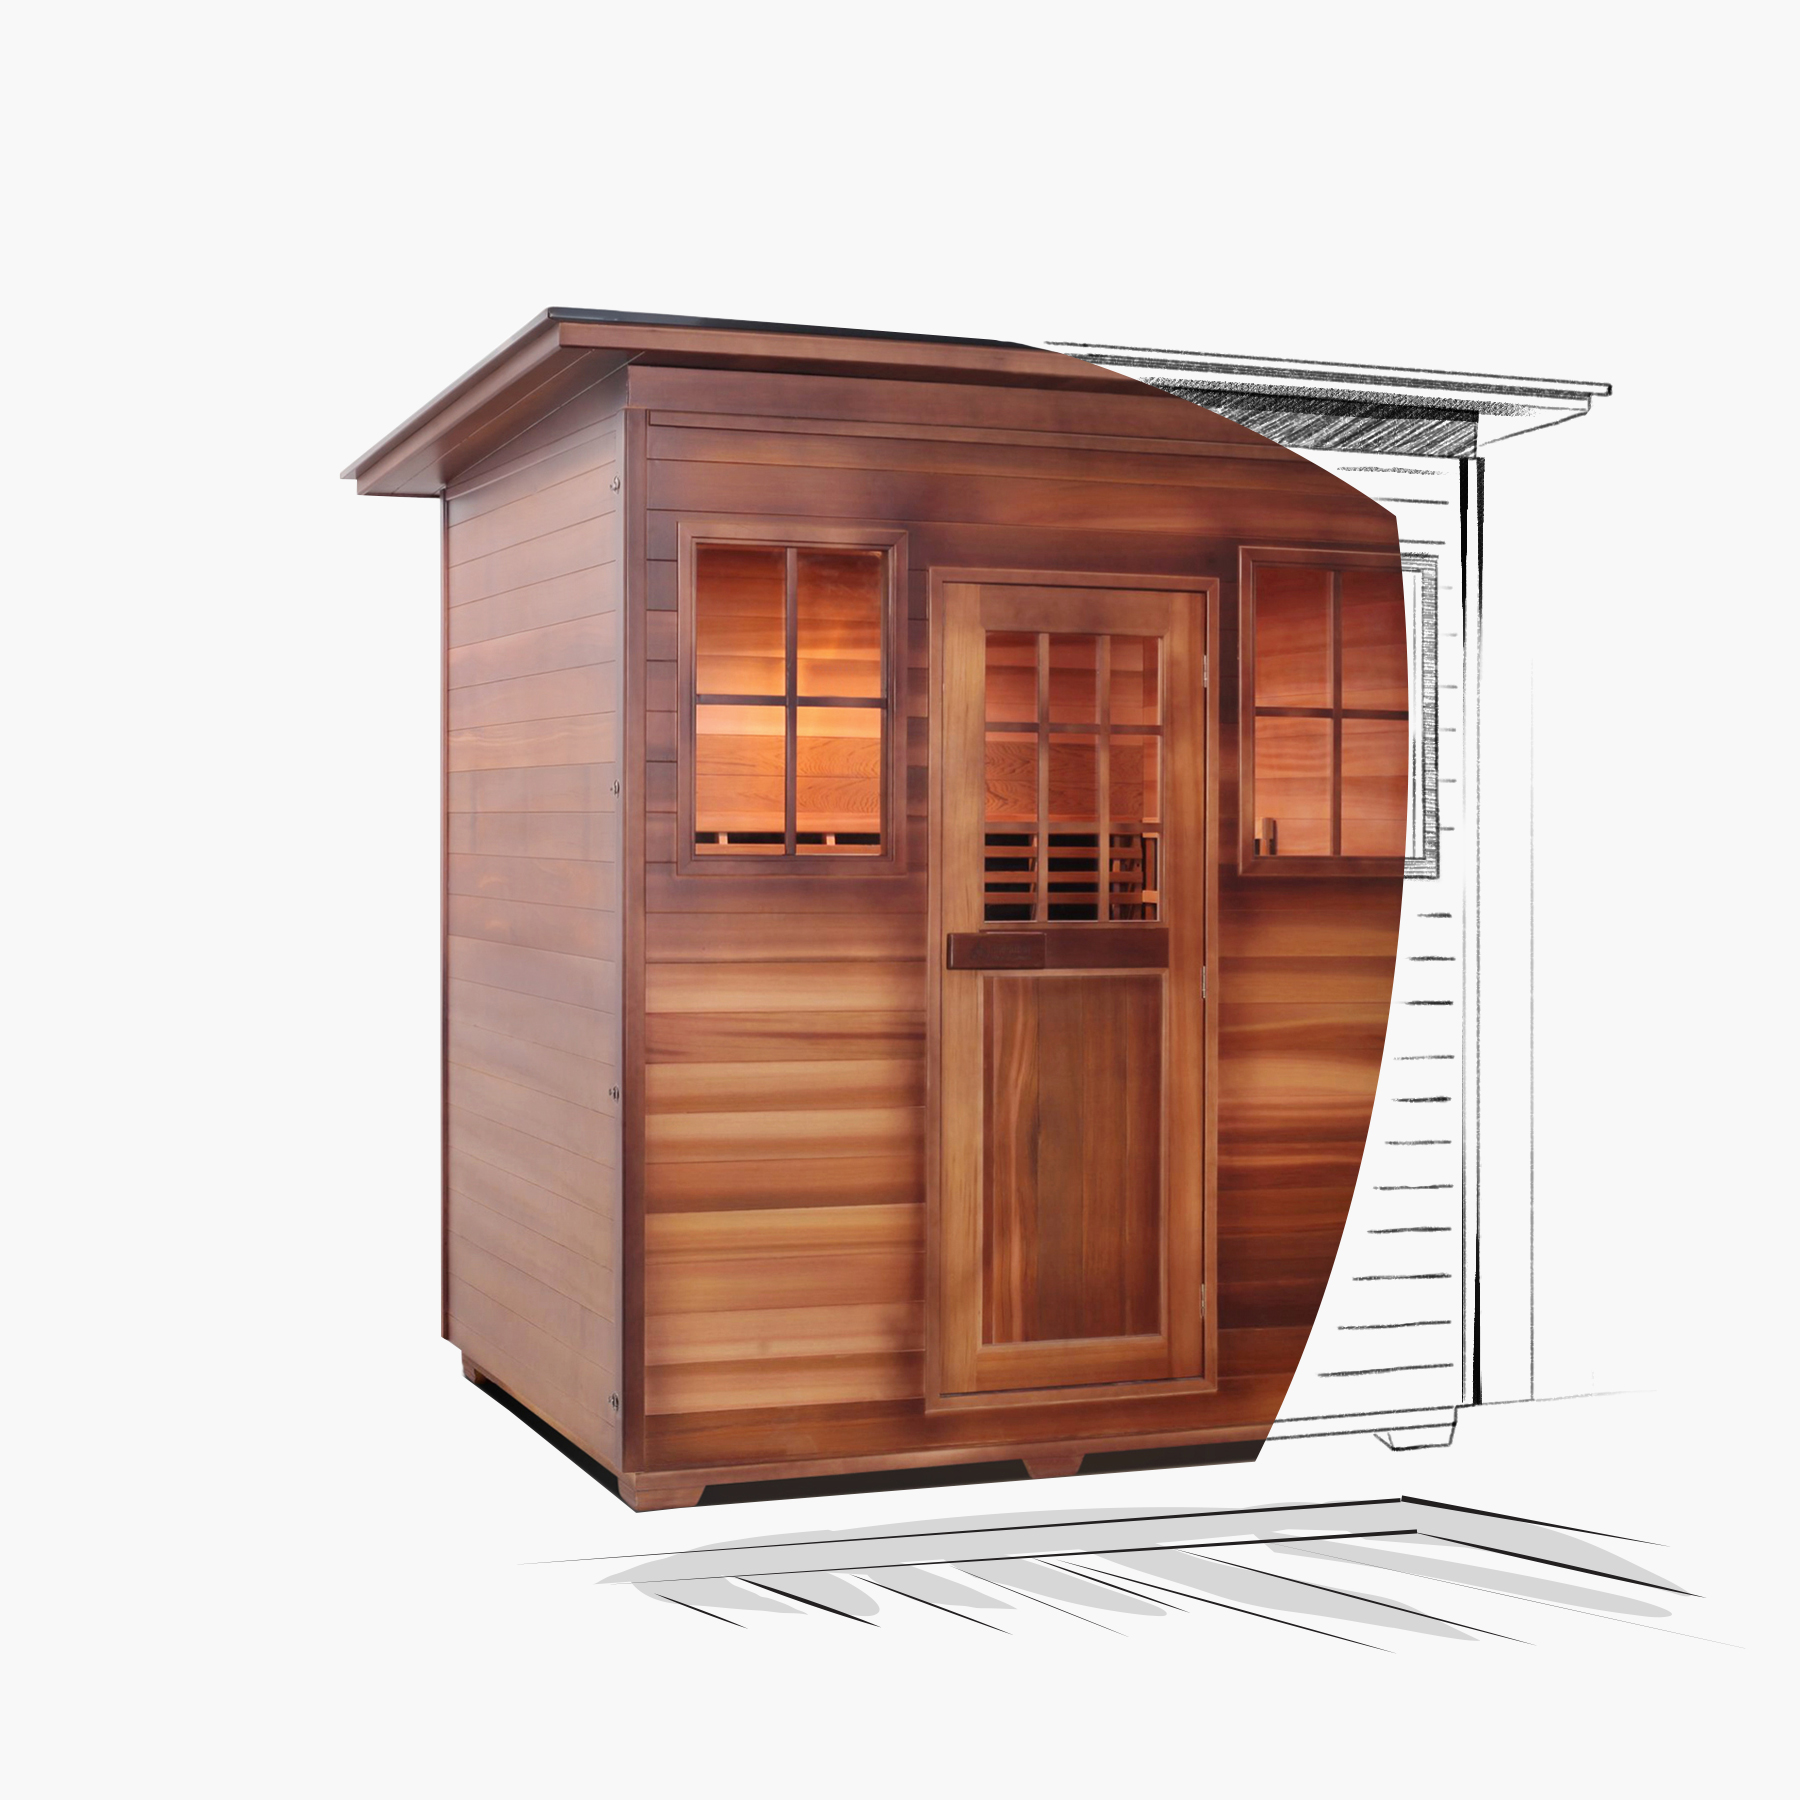 What is usually called an Infrared sauna is, in fact, an infrared therapy cabin. Why is it called a sauna? It's because the sauna environment actually helps to deliver infrared to your body and lack of clothes makes the effectiveness of the therapy session much higher.